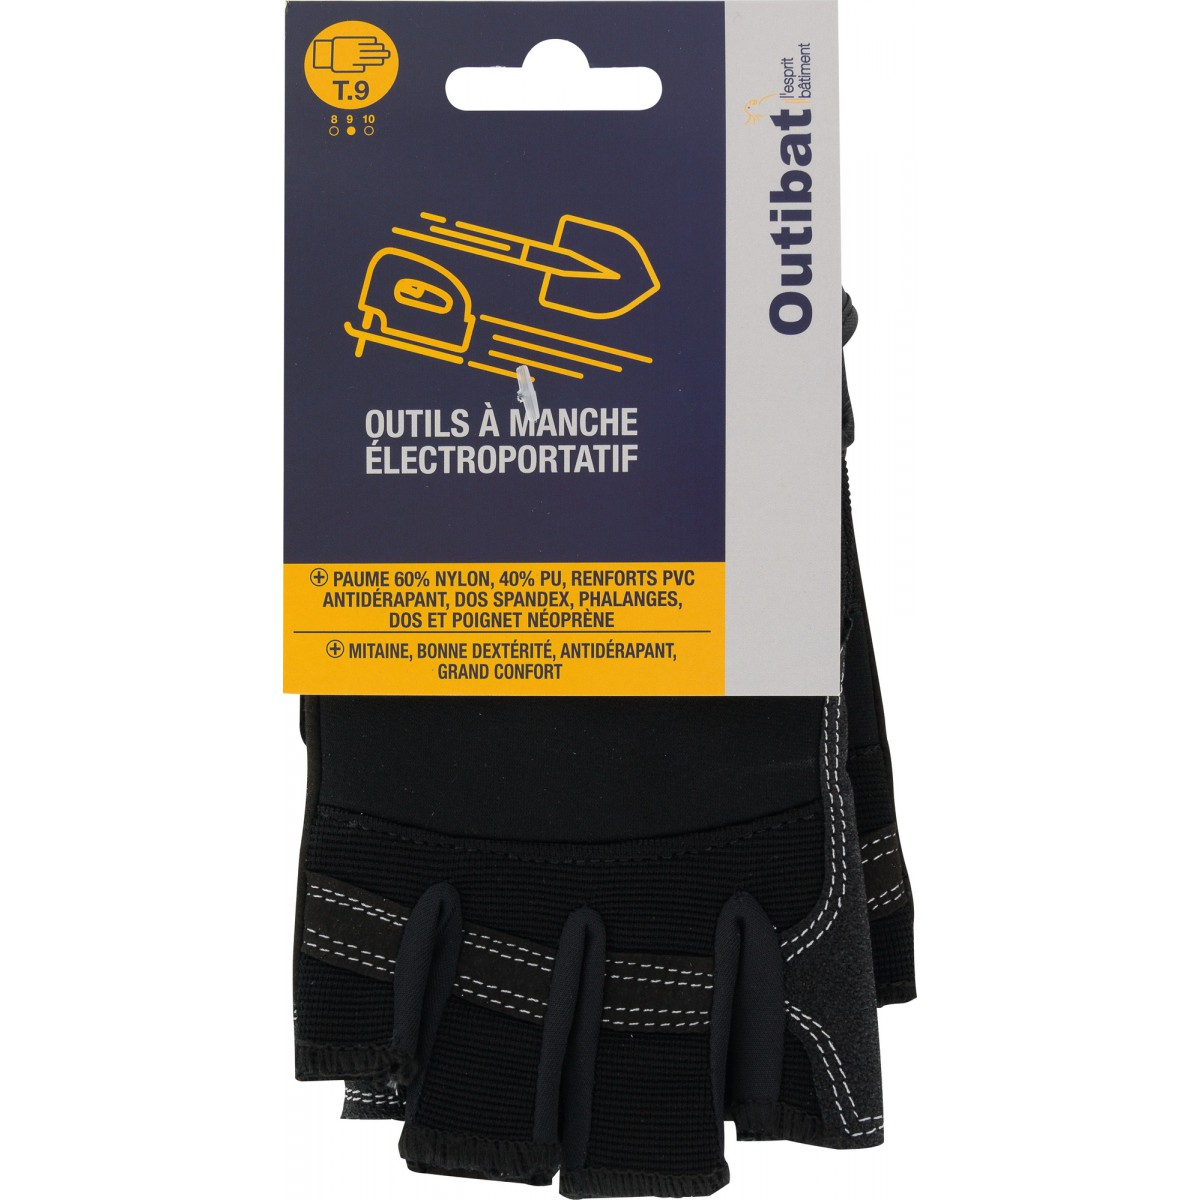 Mitaines cuir synthétique antidérapant poignet auto-grippant Outibat - Taille 9